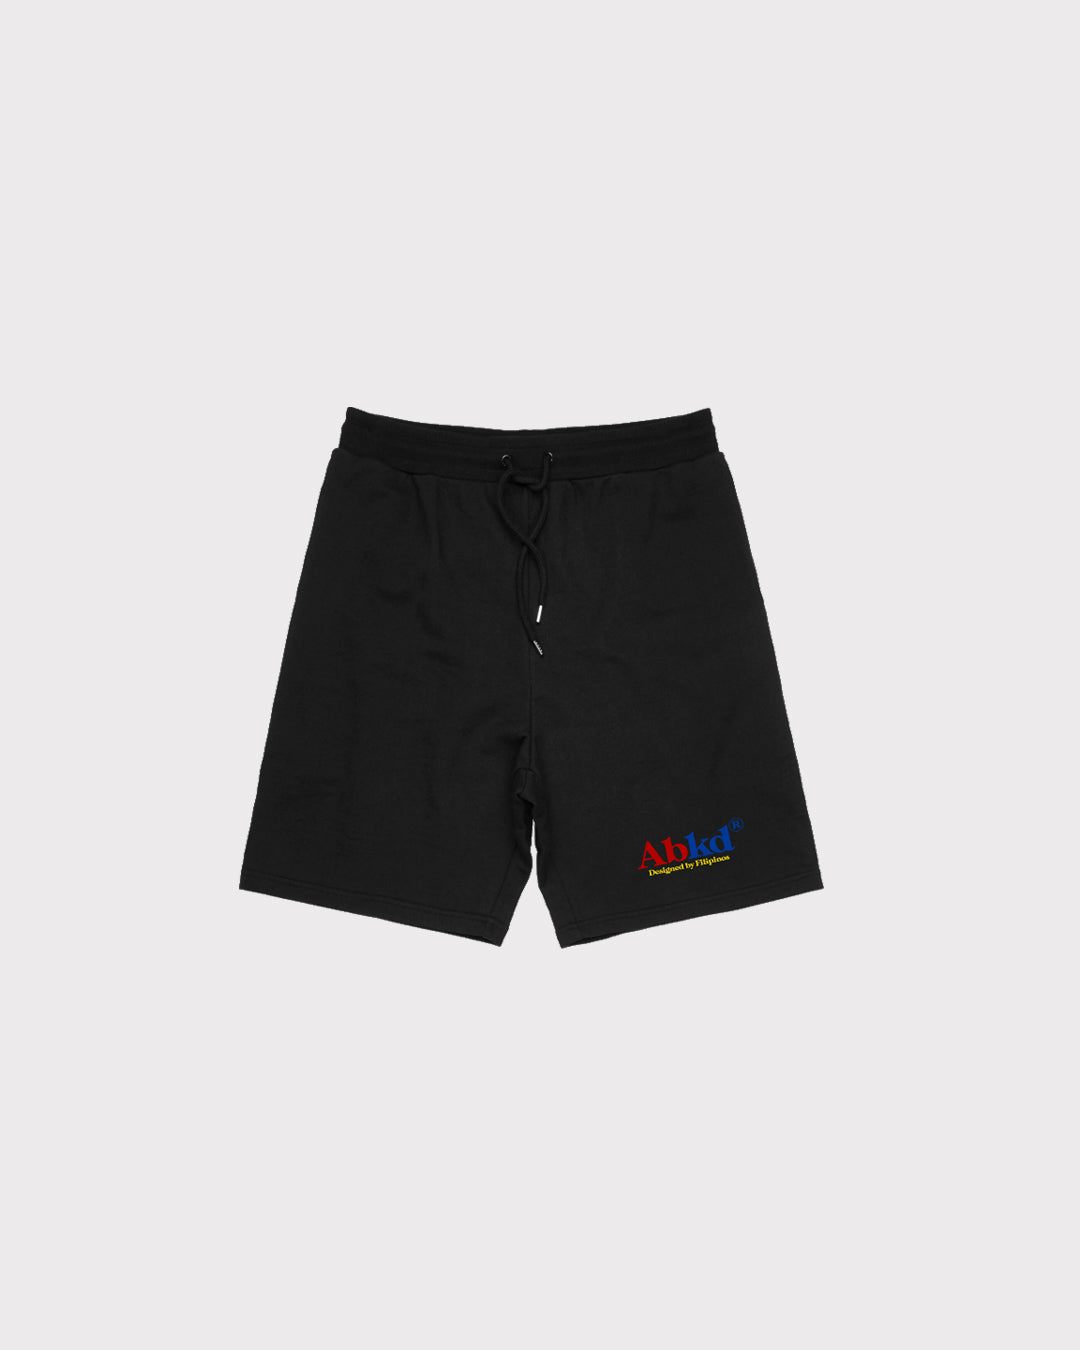 Abakada® Independence Shorts (Black)